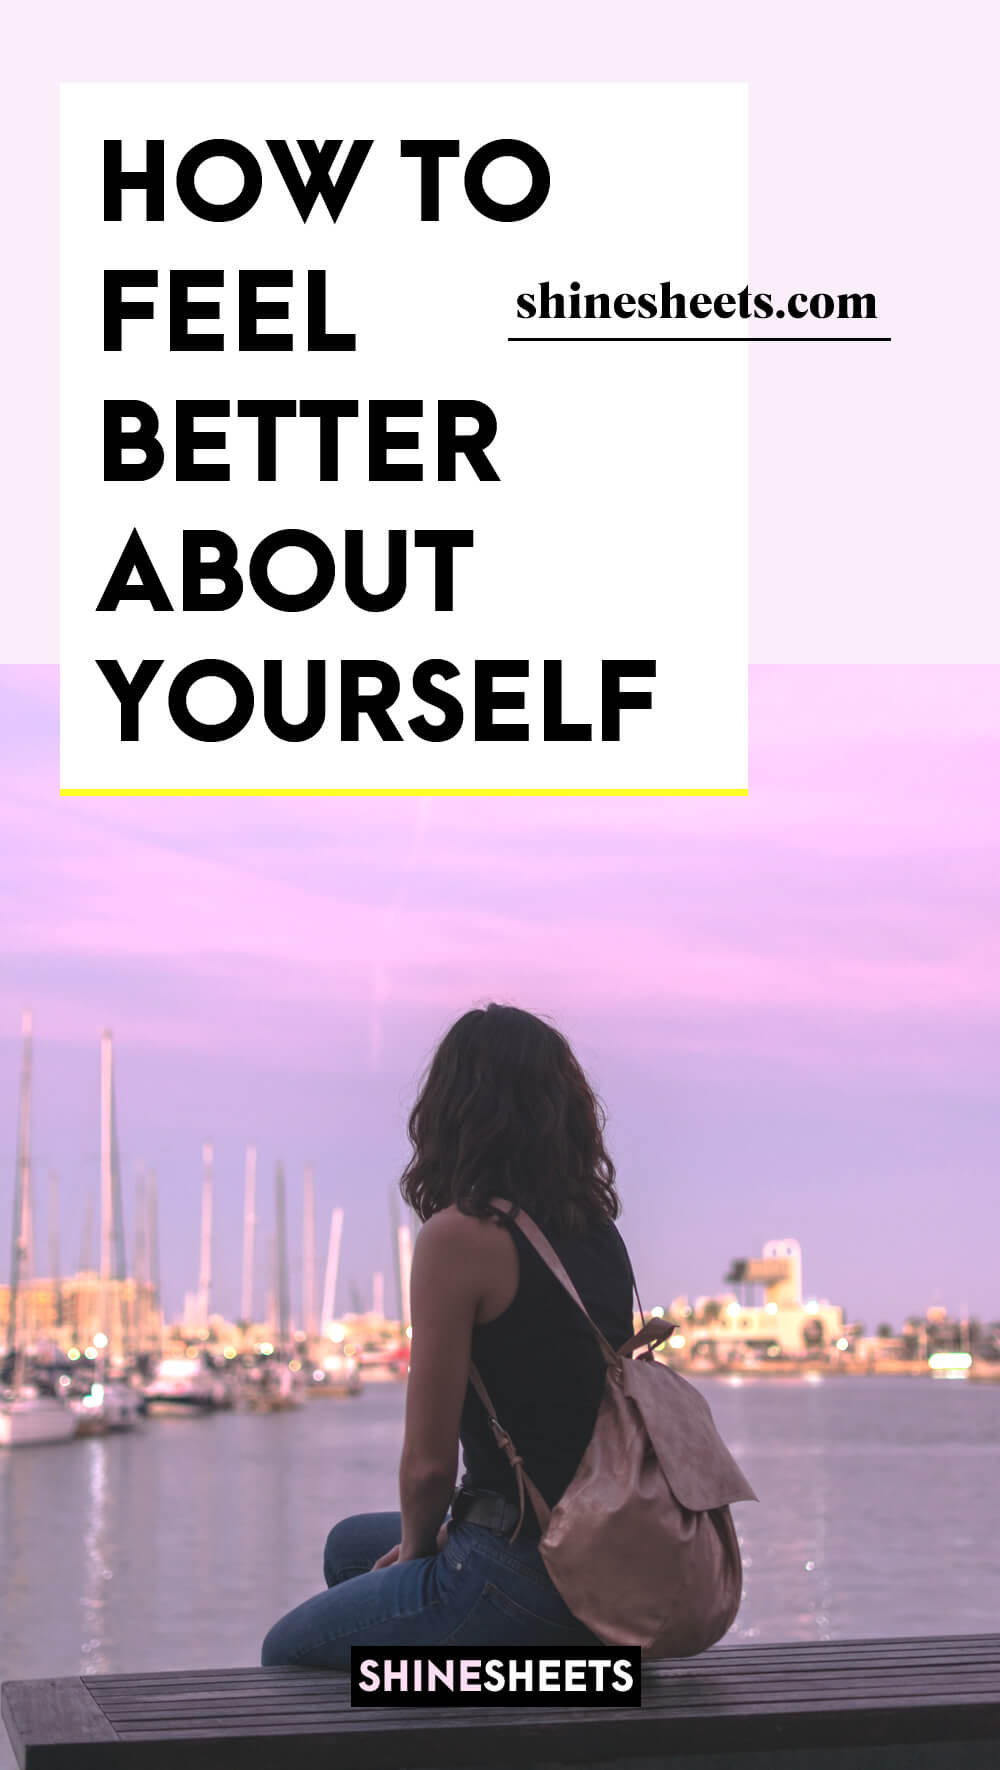 woman in the process of learning how to feel better about yourself